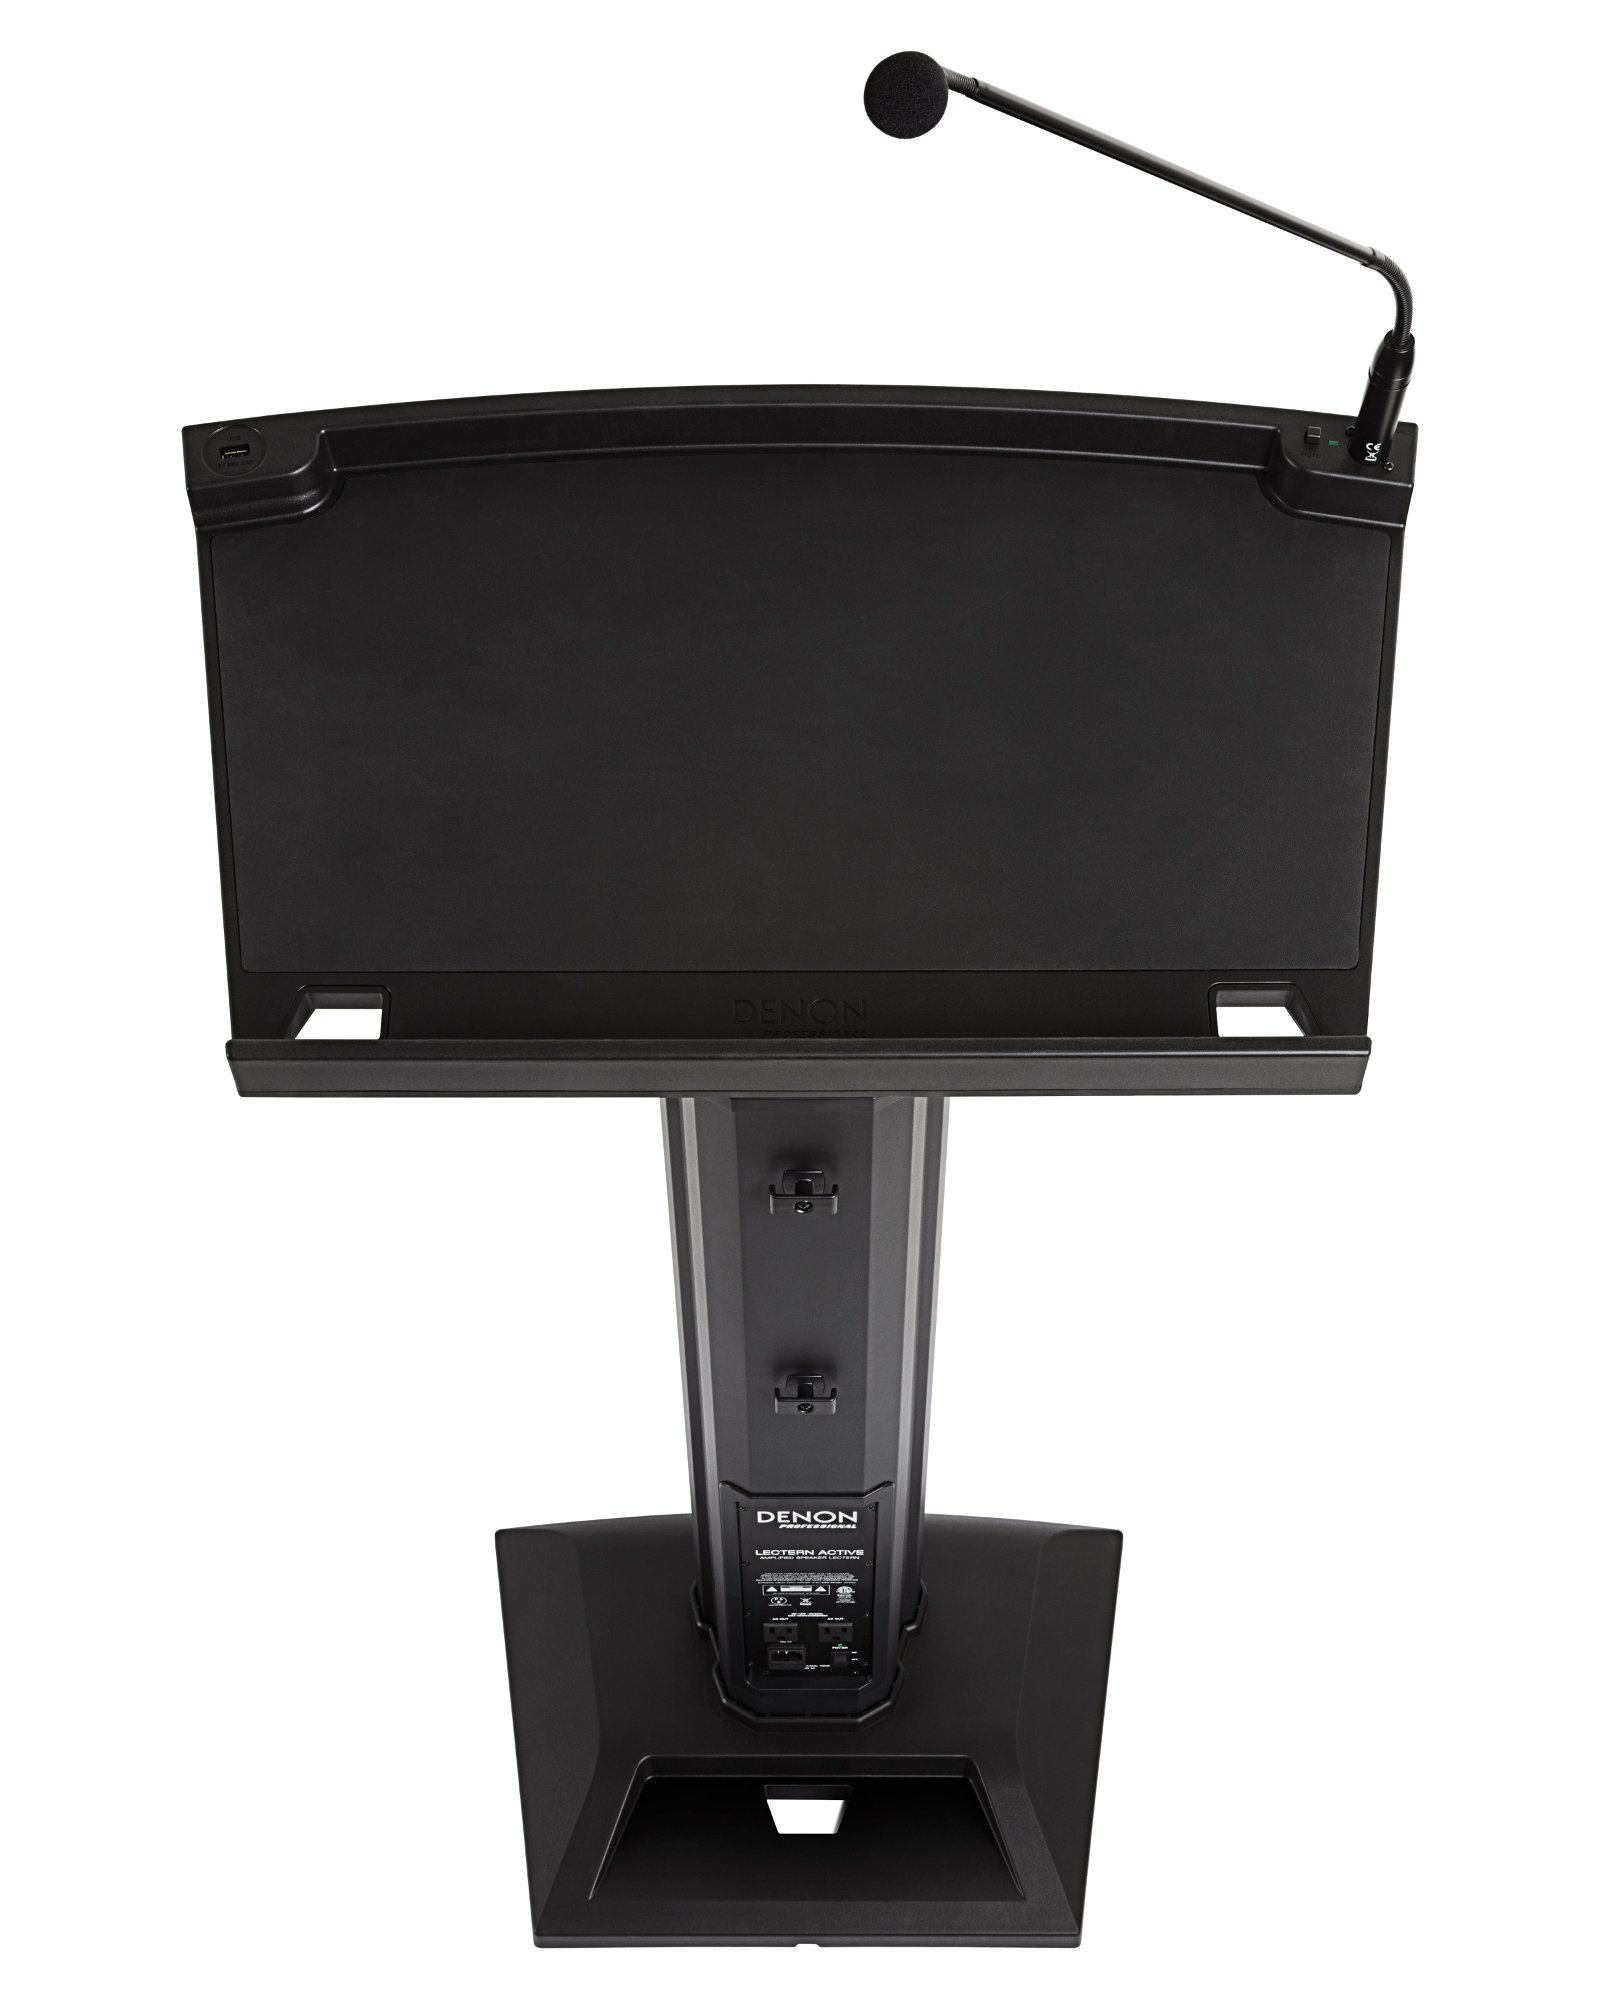 Amplified Lectern with Built-in Speakers and Gooseneck Microphone